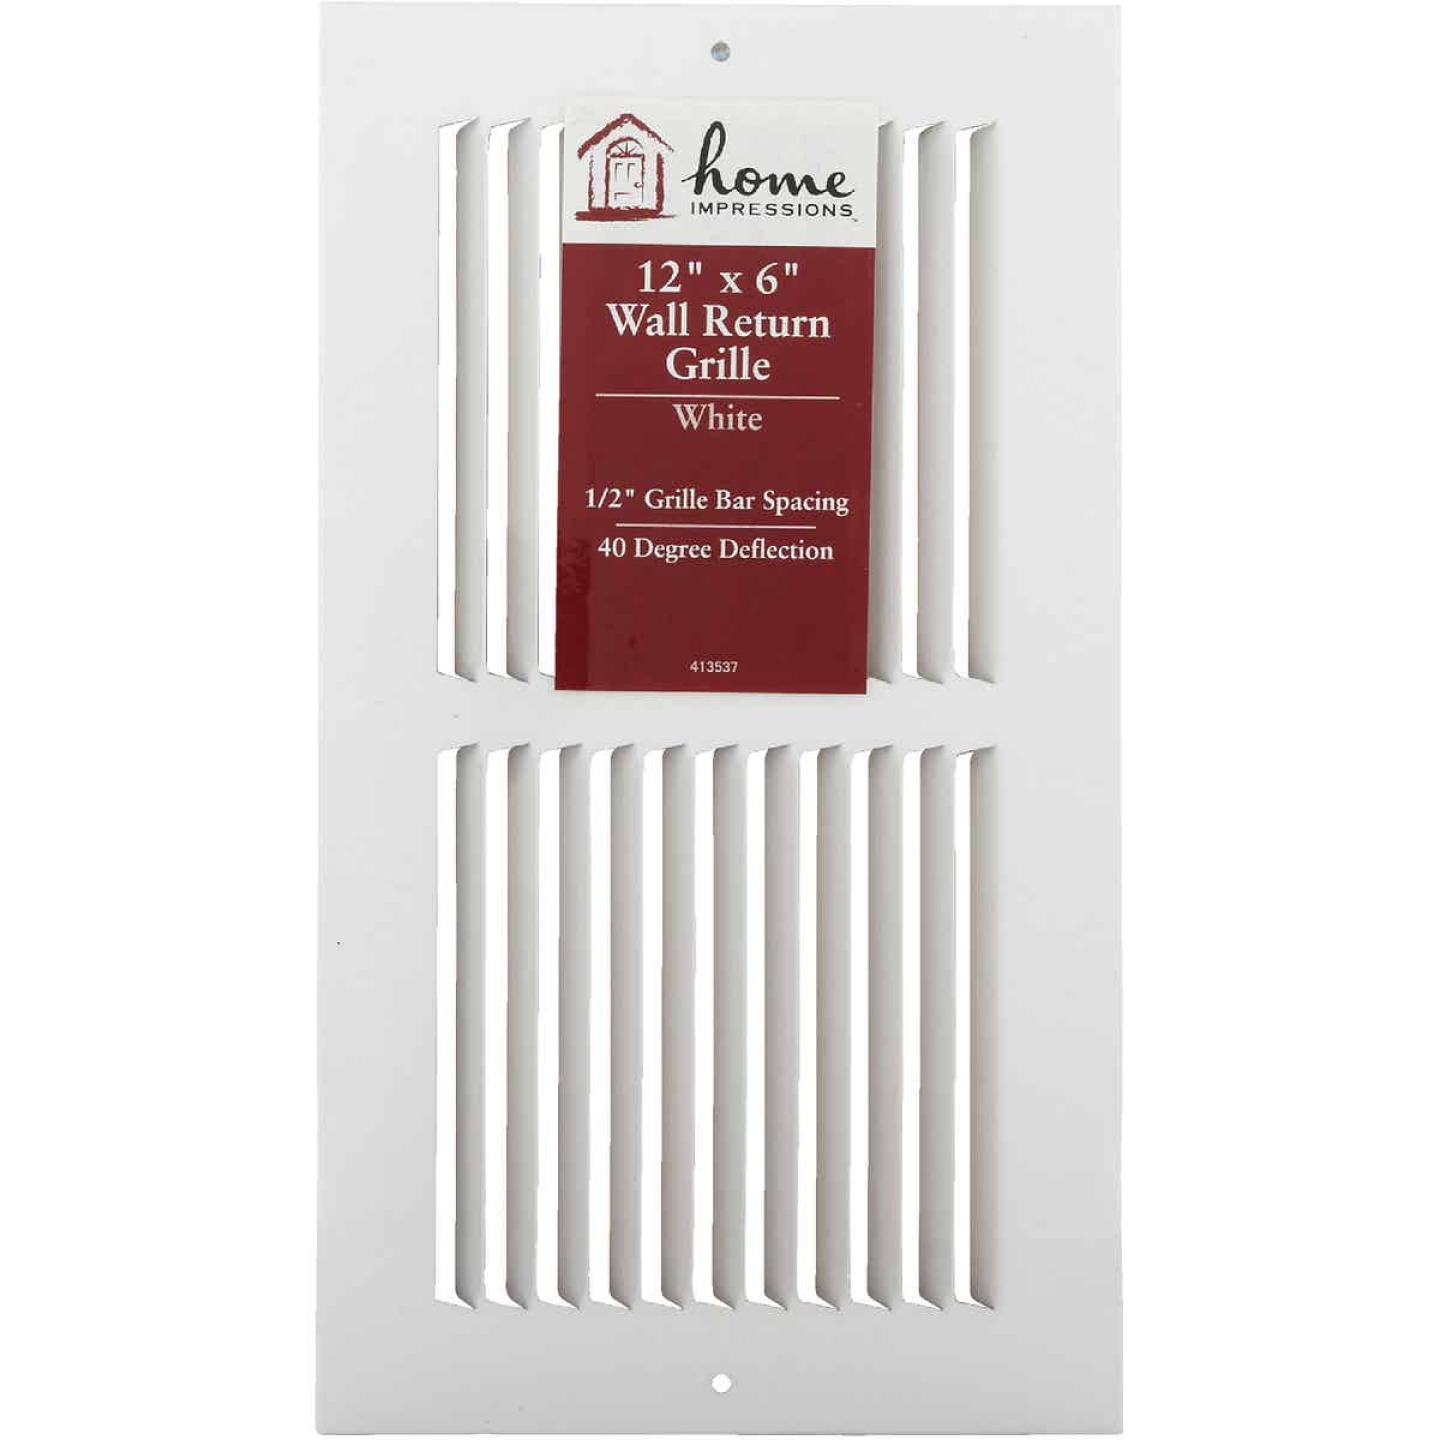 Home Impressions 6 In. x 12 In. Stamped Steel Return Air Grille Image 2